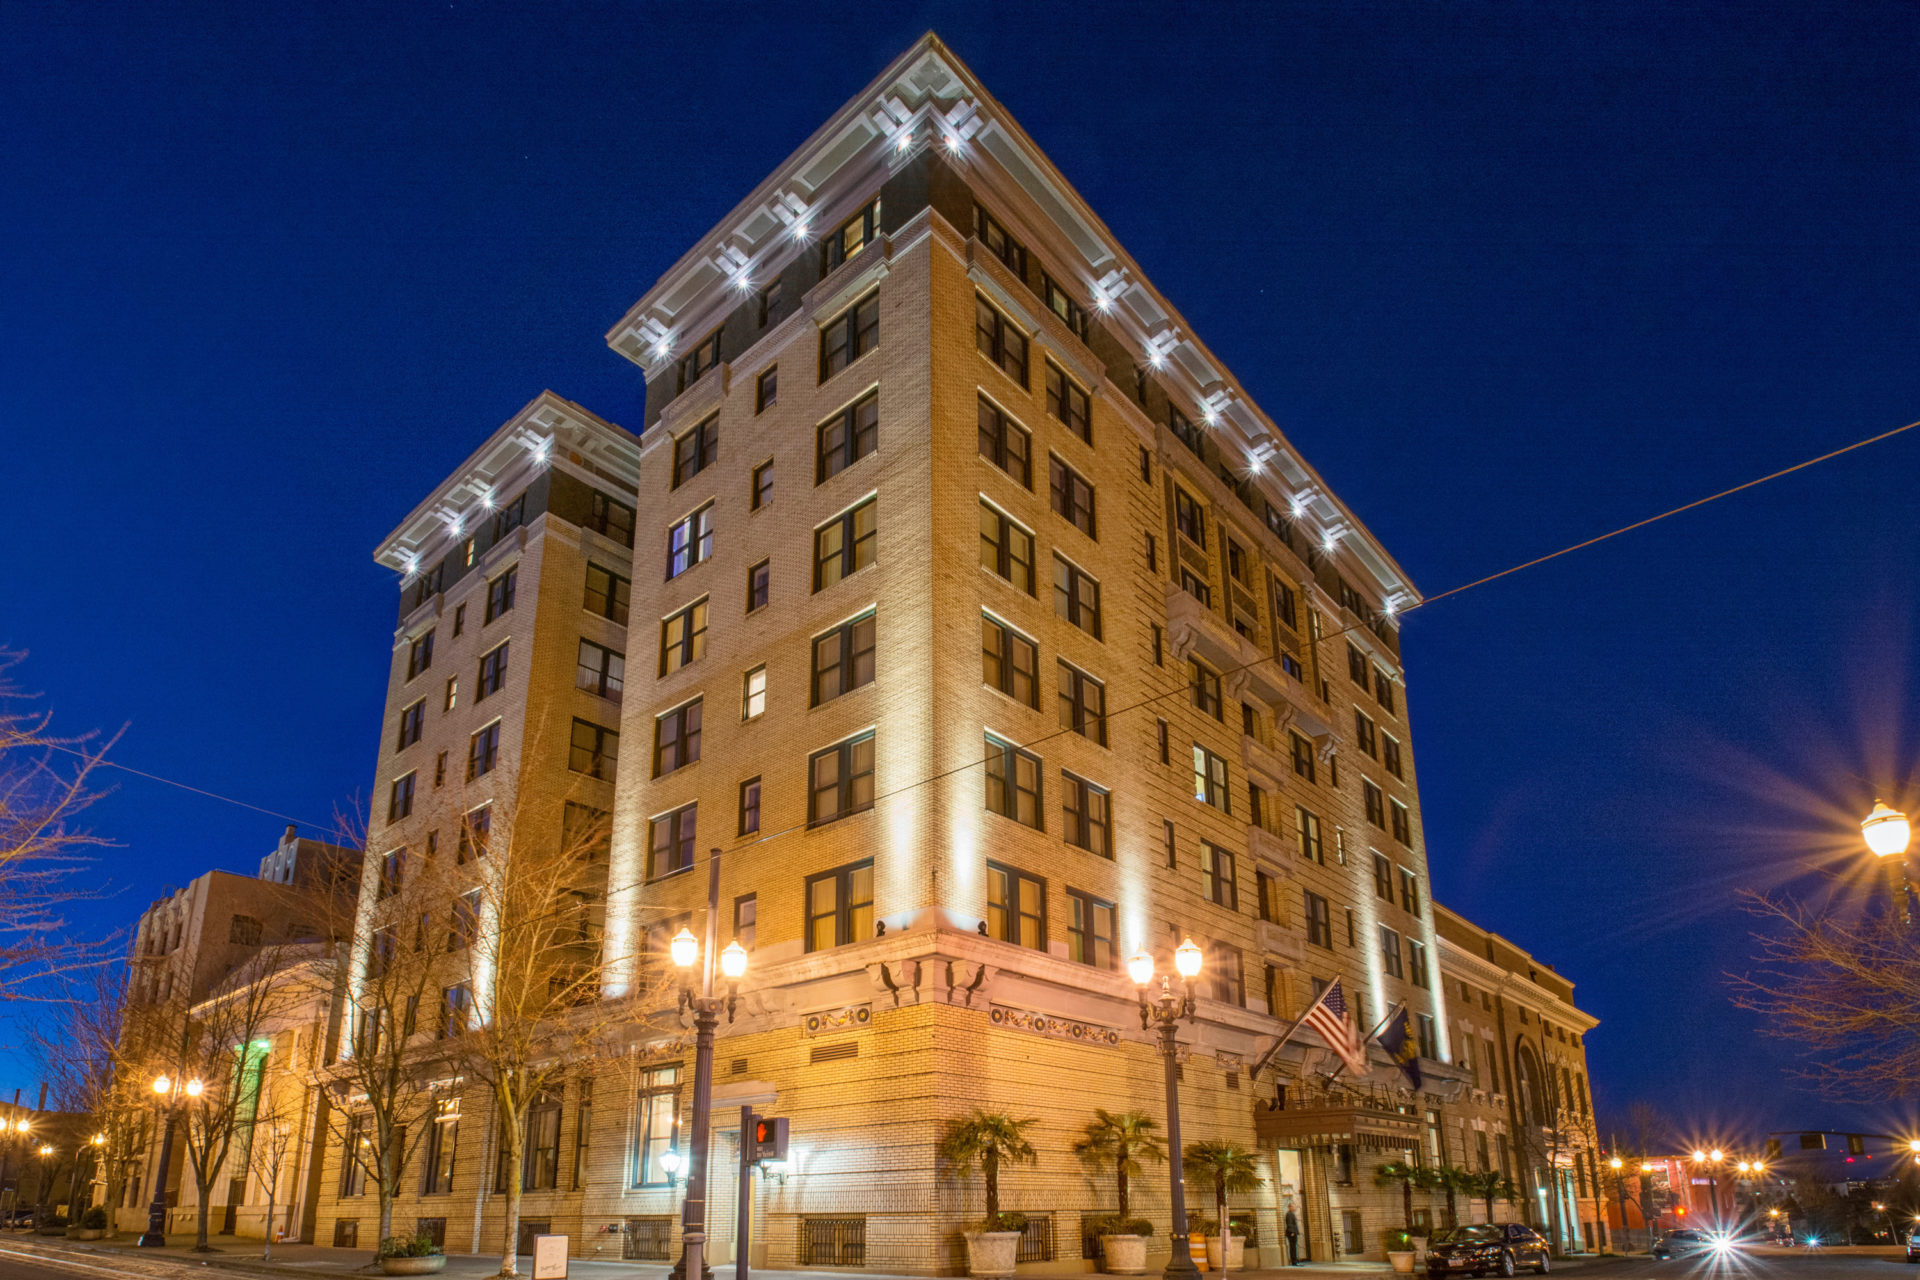 Portland Gay Friendly Hotels with reviews